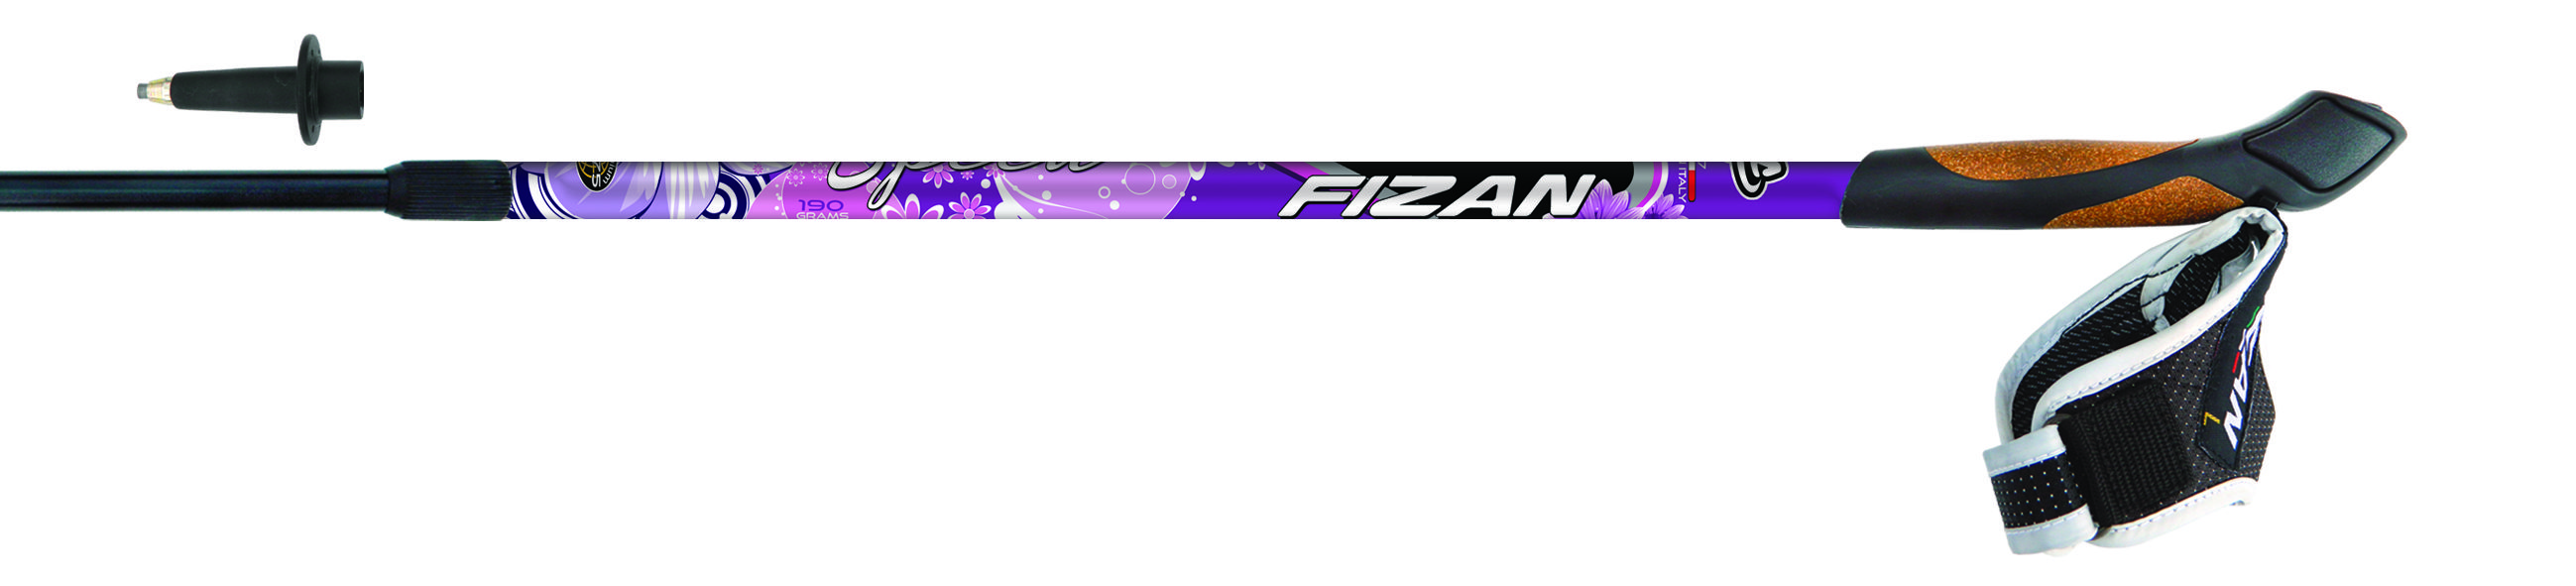 Do you like our Fizan - Speed Lady #pole? Anti vibrations junction, dual density cork rubber grip and Fast Release system. Only 190 grams! Enjoy your #nordicwalking  www.fizan.it